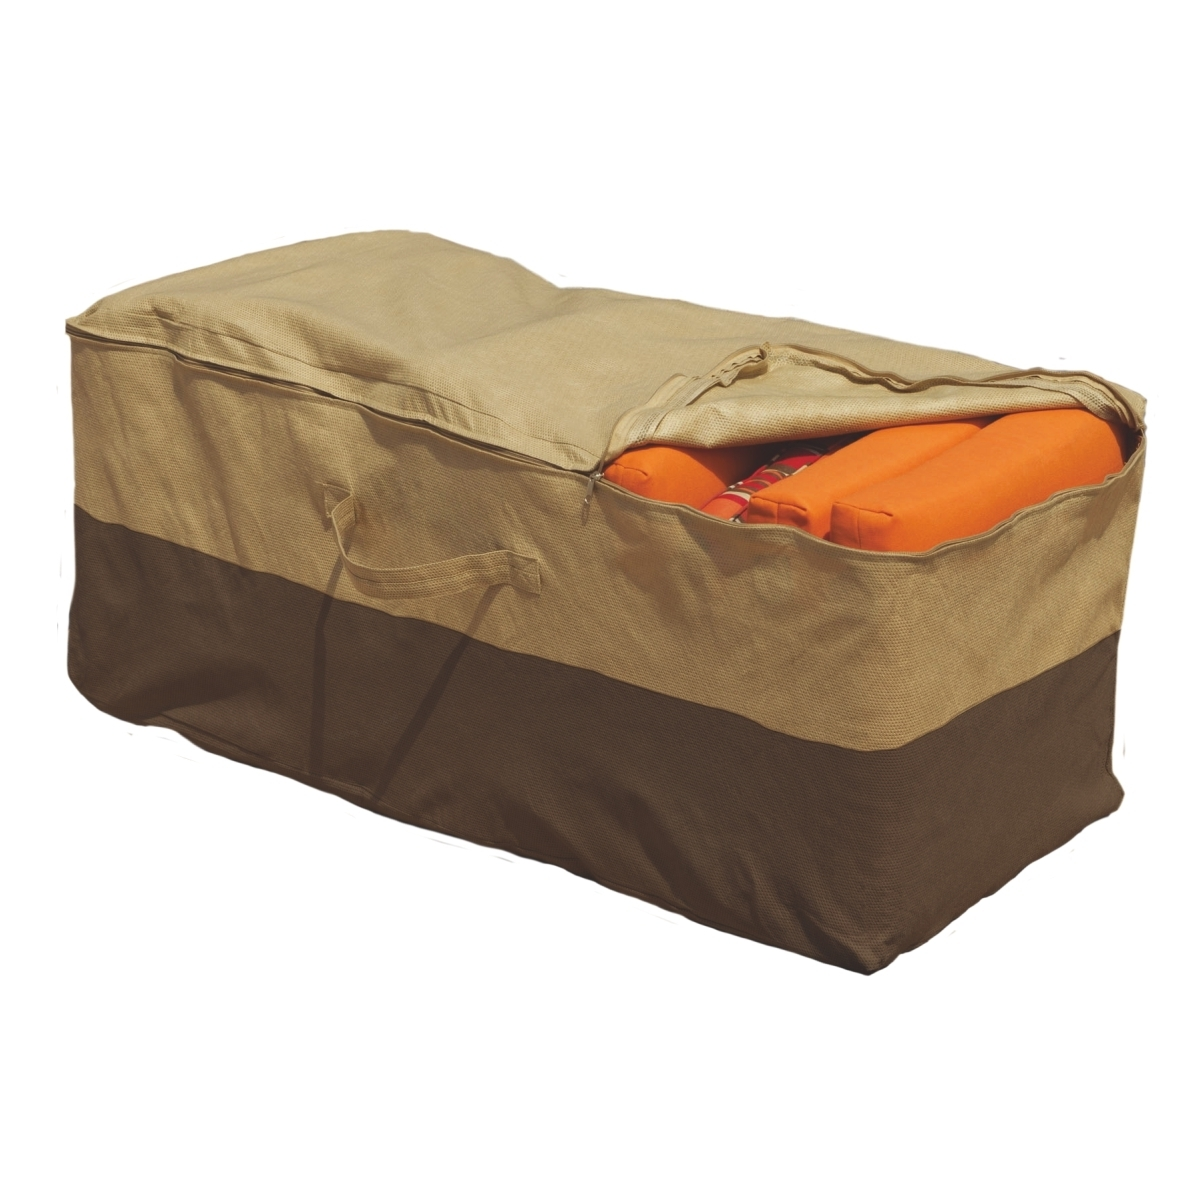 Image of: Cushion Bag Outdoor Furniture Roselawnlutheran Within Outdoor Cushion Storage Bags To Save At Outdoor Cushion Storage Bags